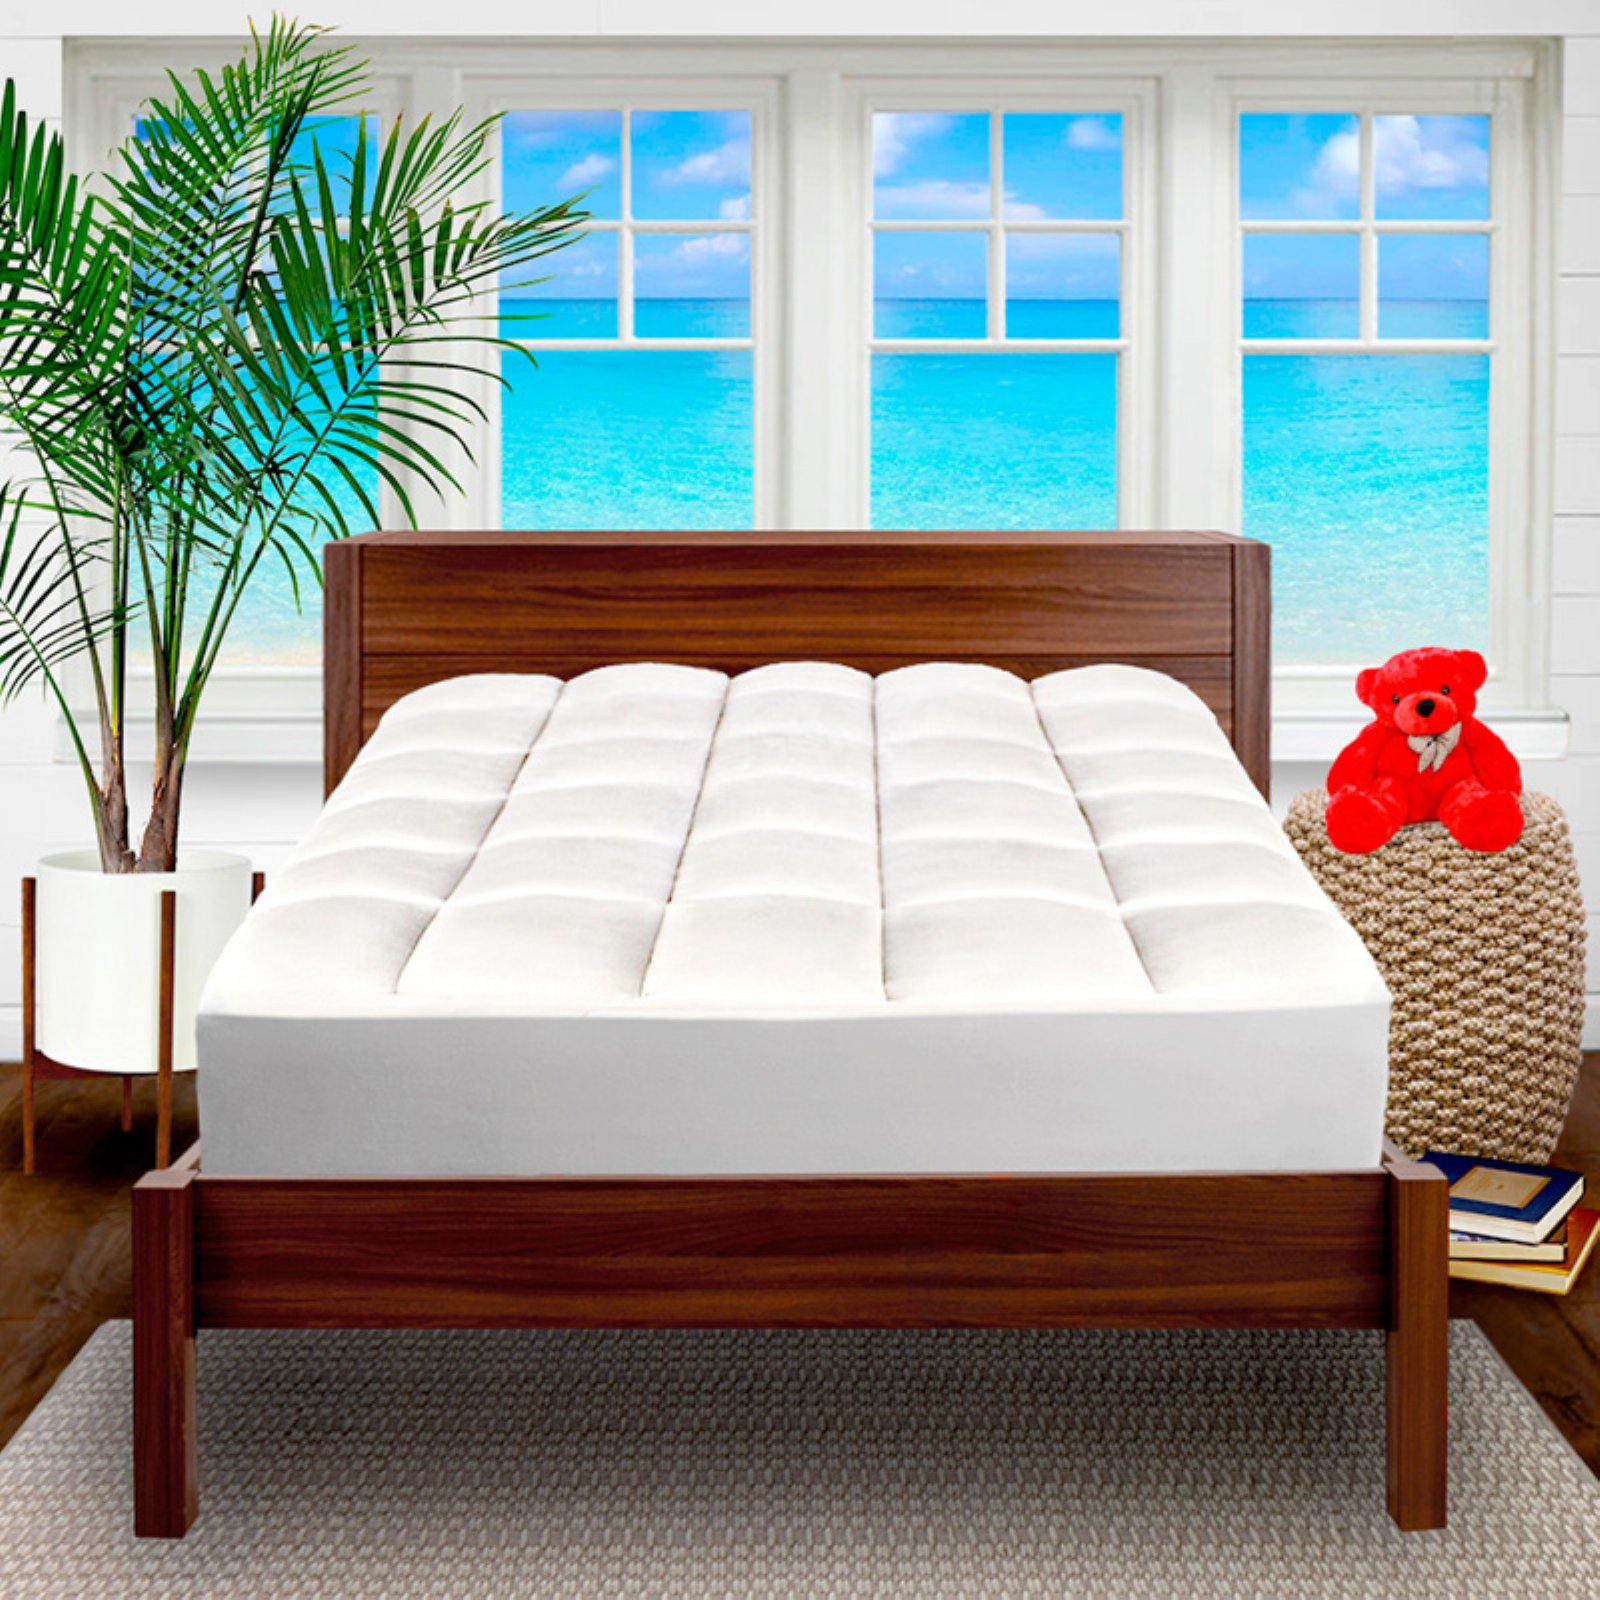 Bare Home Premium Mattress Pad